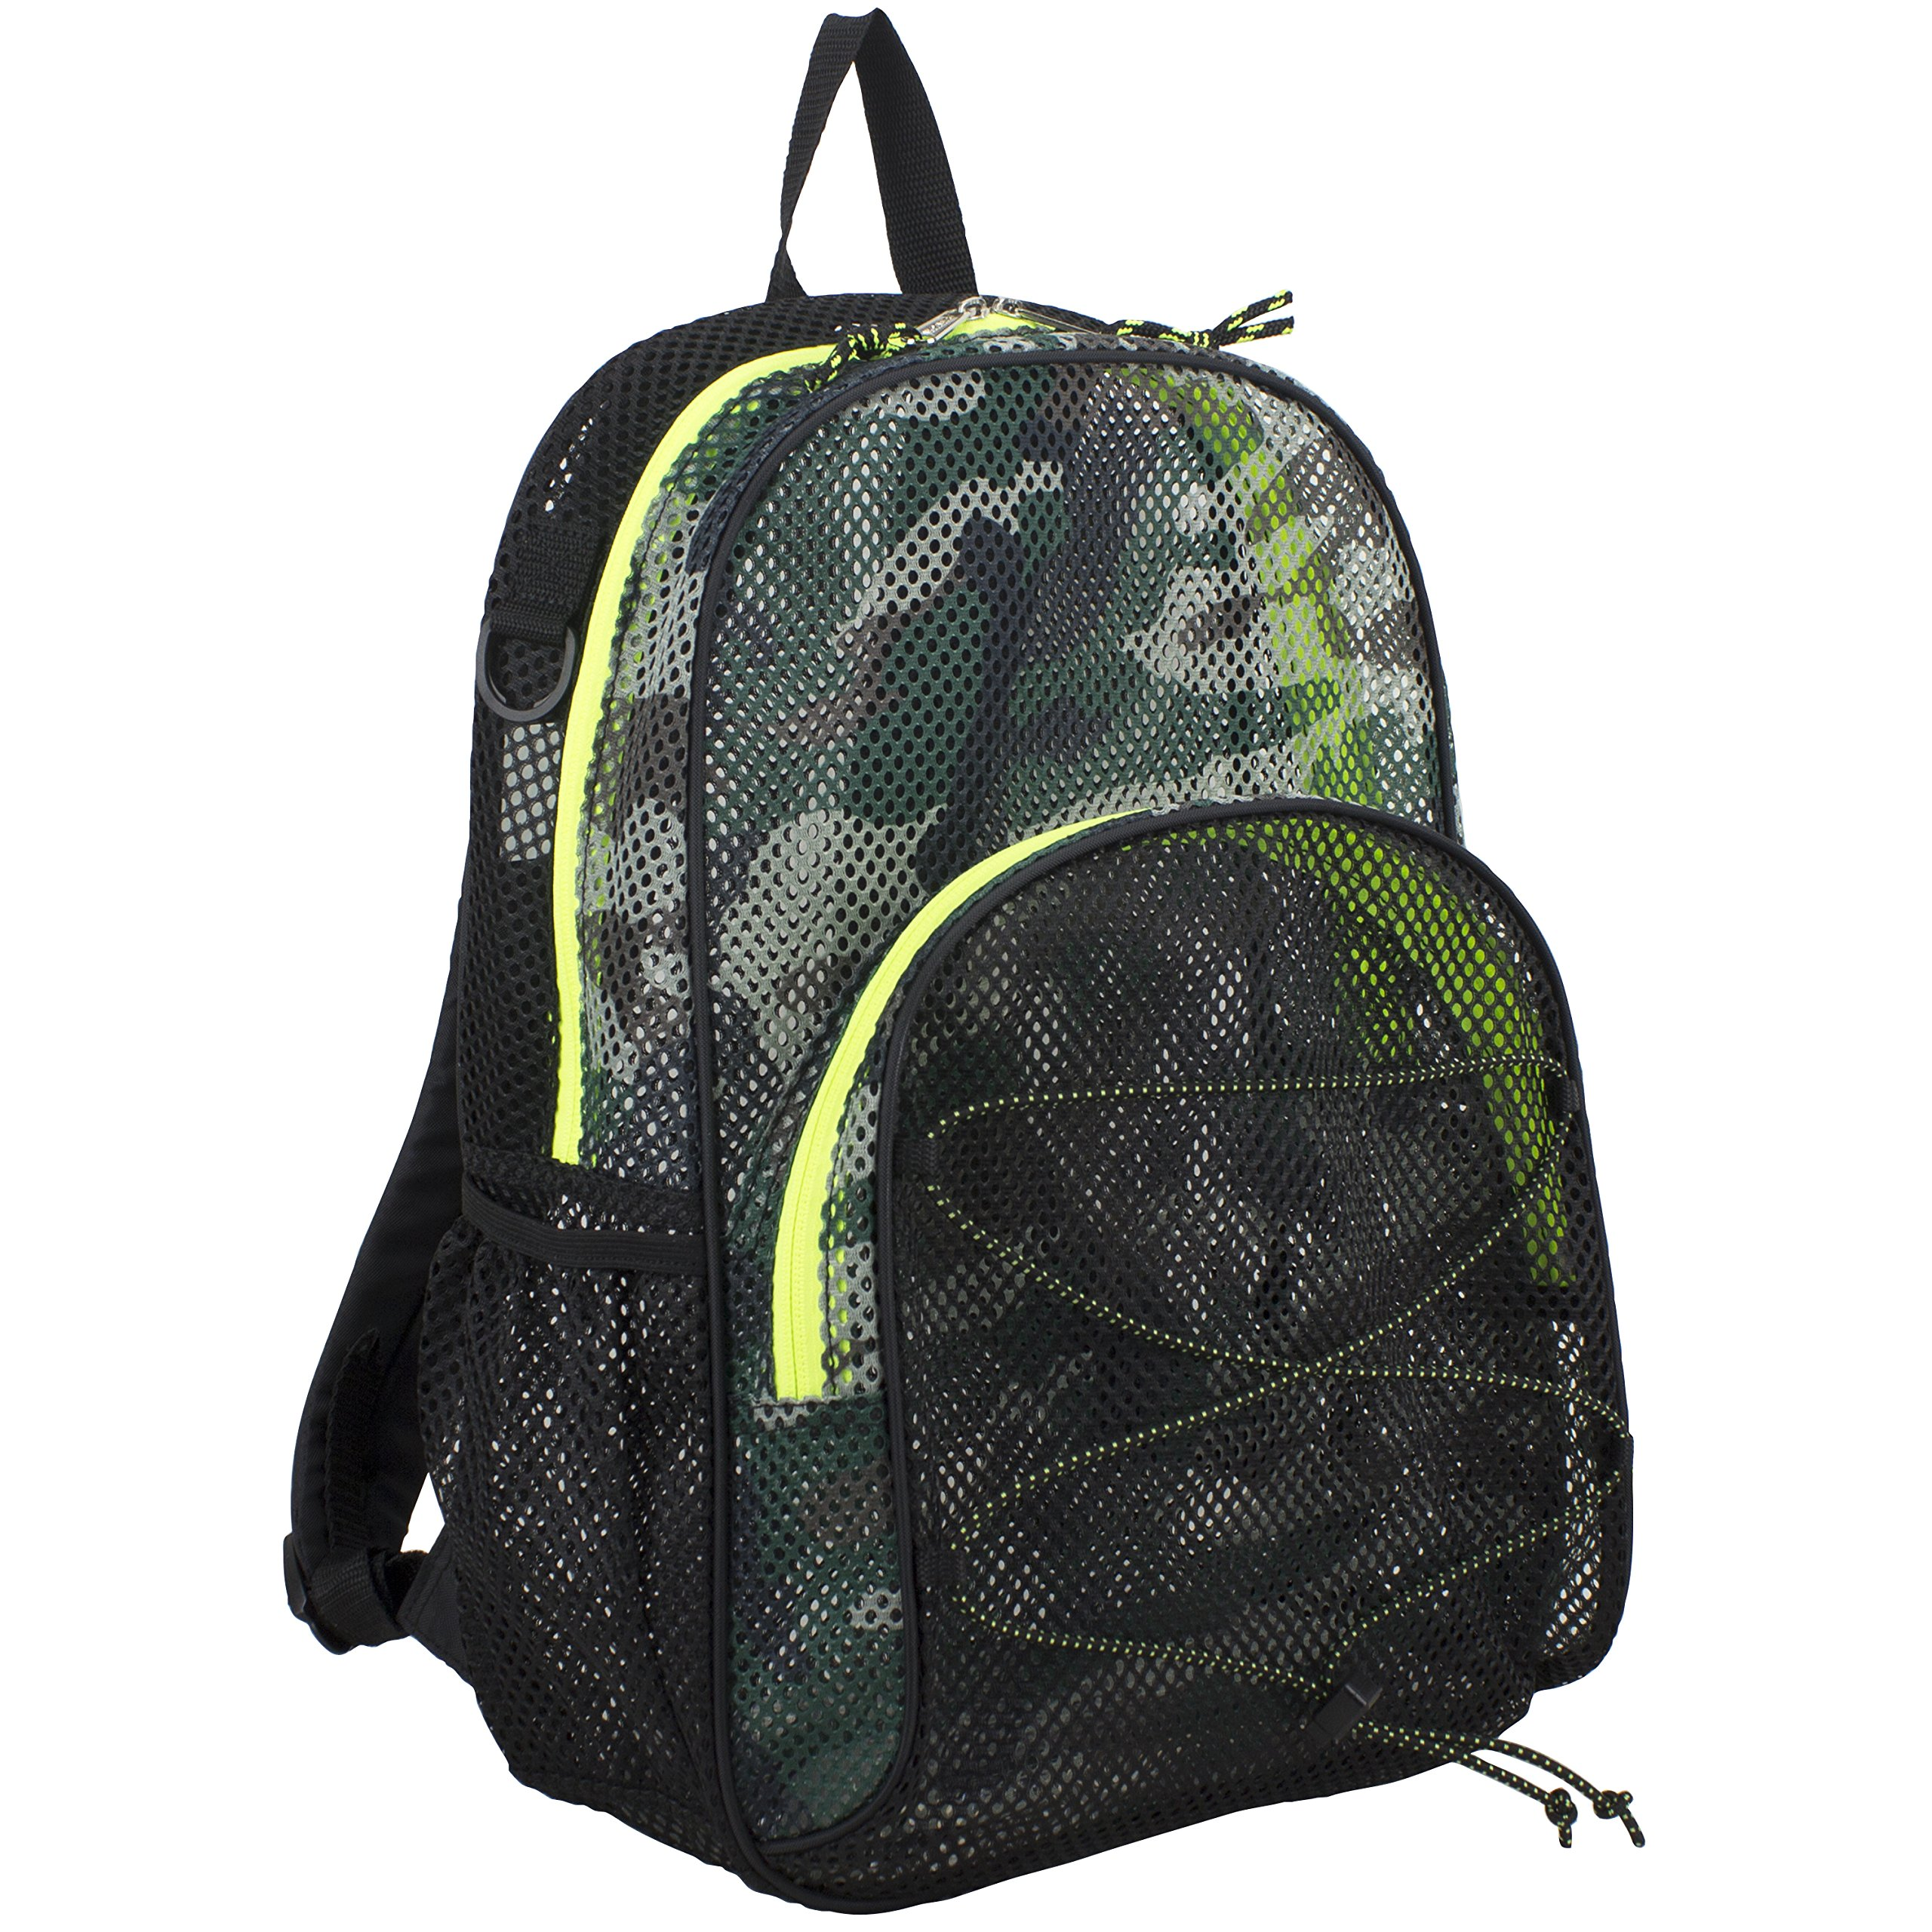 d71ce359b5 Buy Eastsport Mesh Backpack With Padded Shoulder Straps in Cheap ...